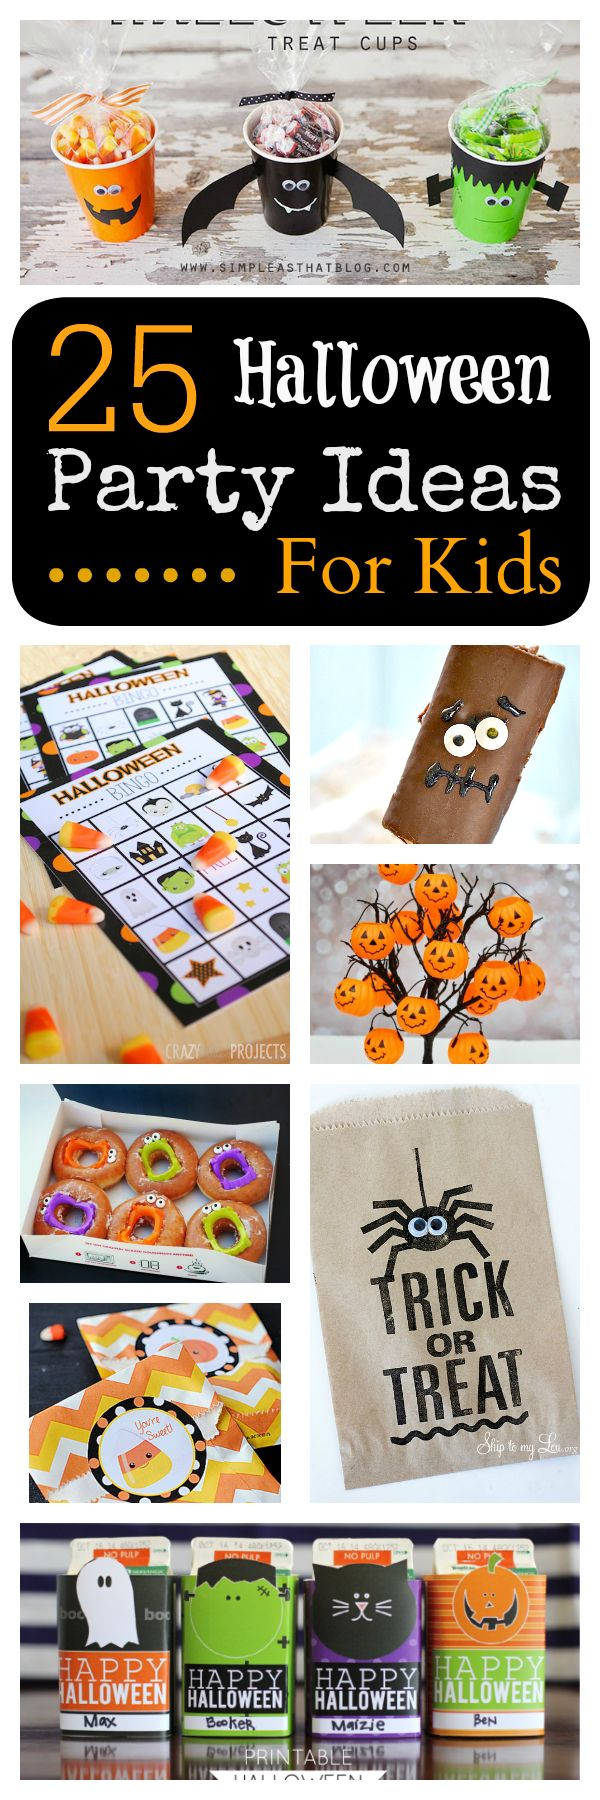 Top 214 ideas about Halloween on Pinterest | Spider webs, Easy ...